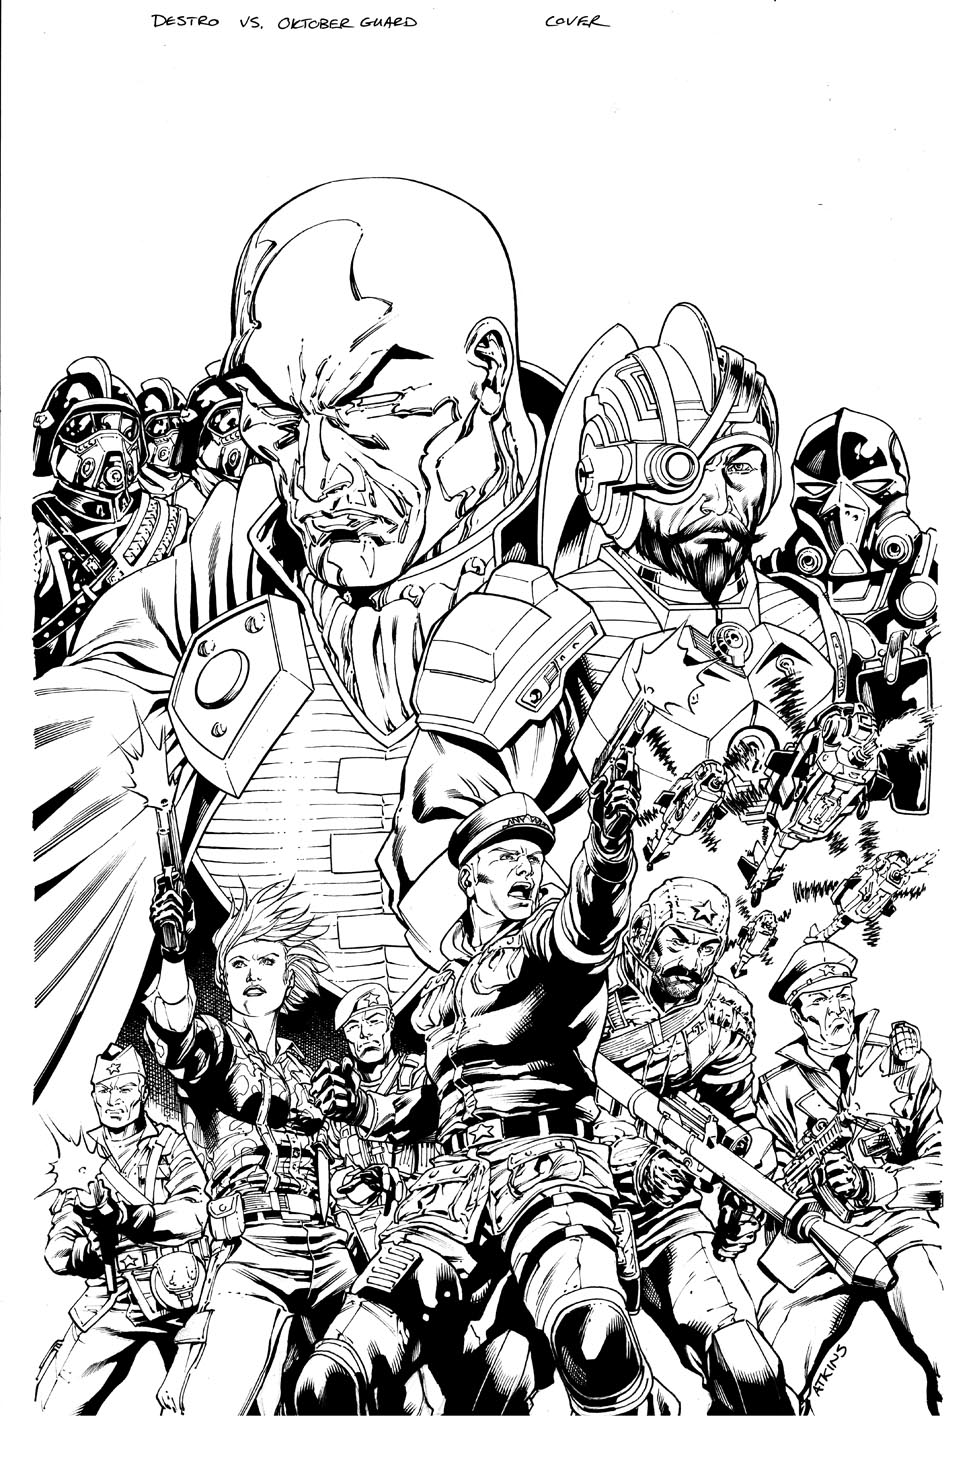 Image #24500 - Coloriage gi joe gratuit